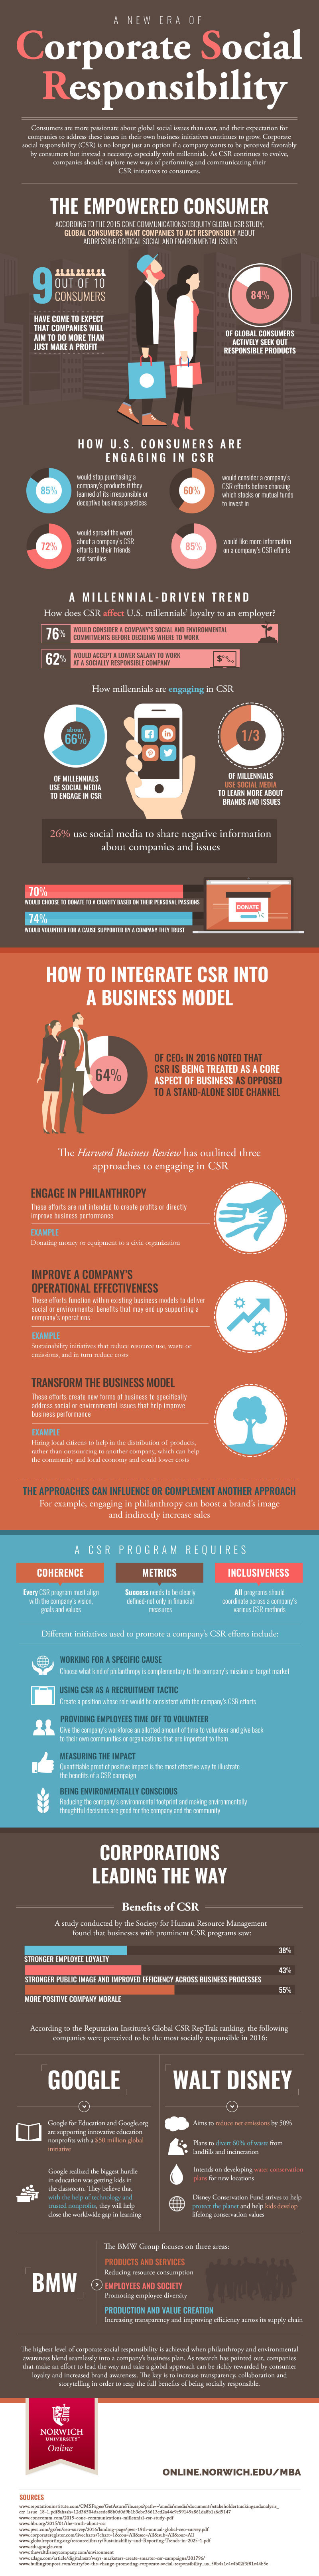 infographic on corporate social responsibility